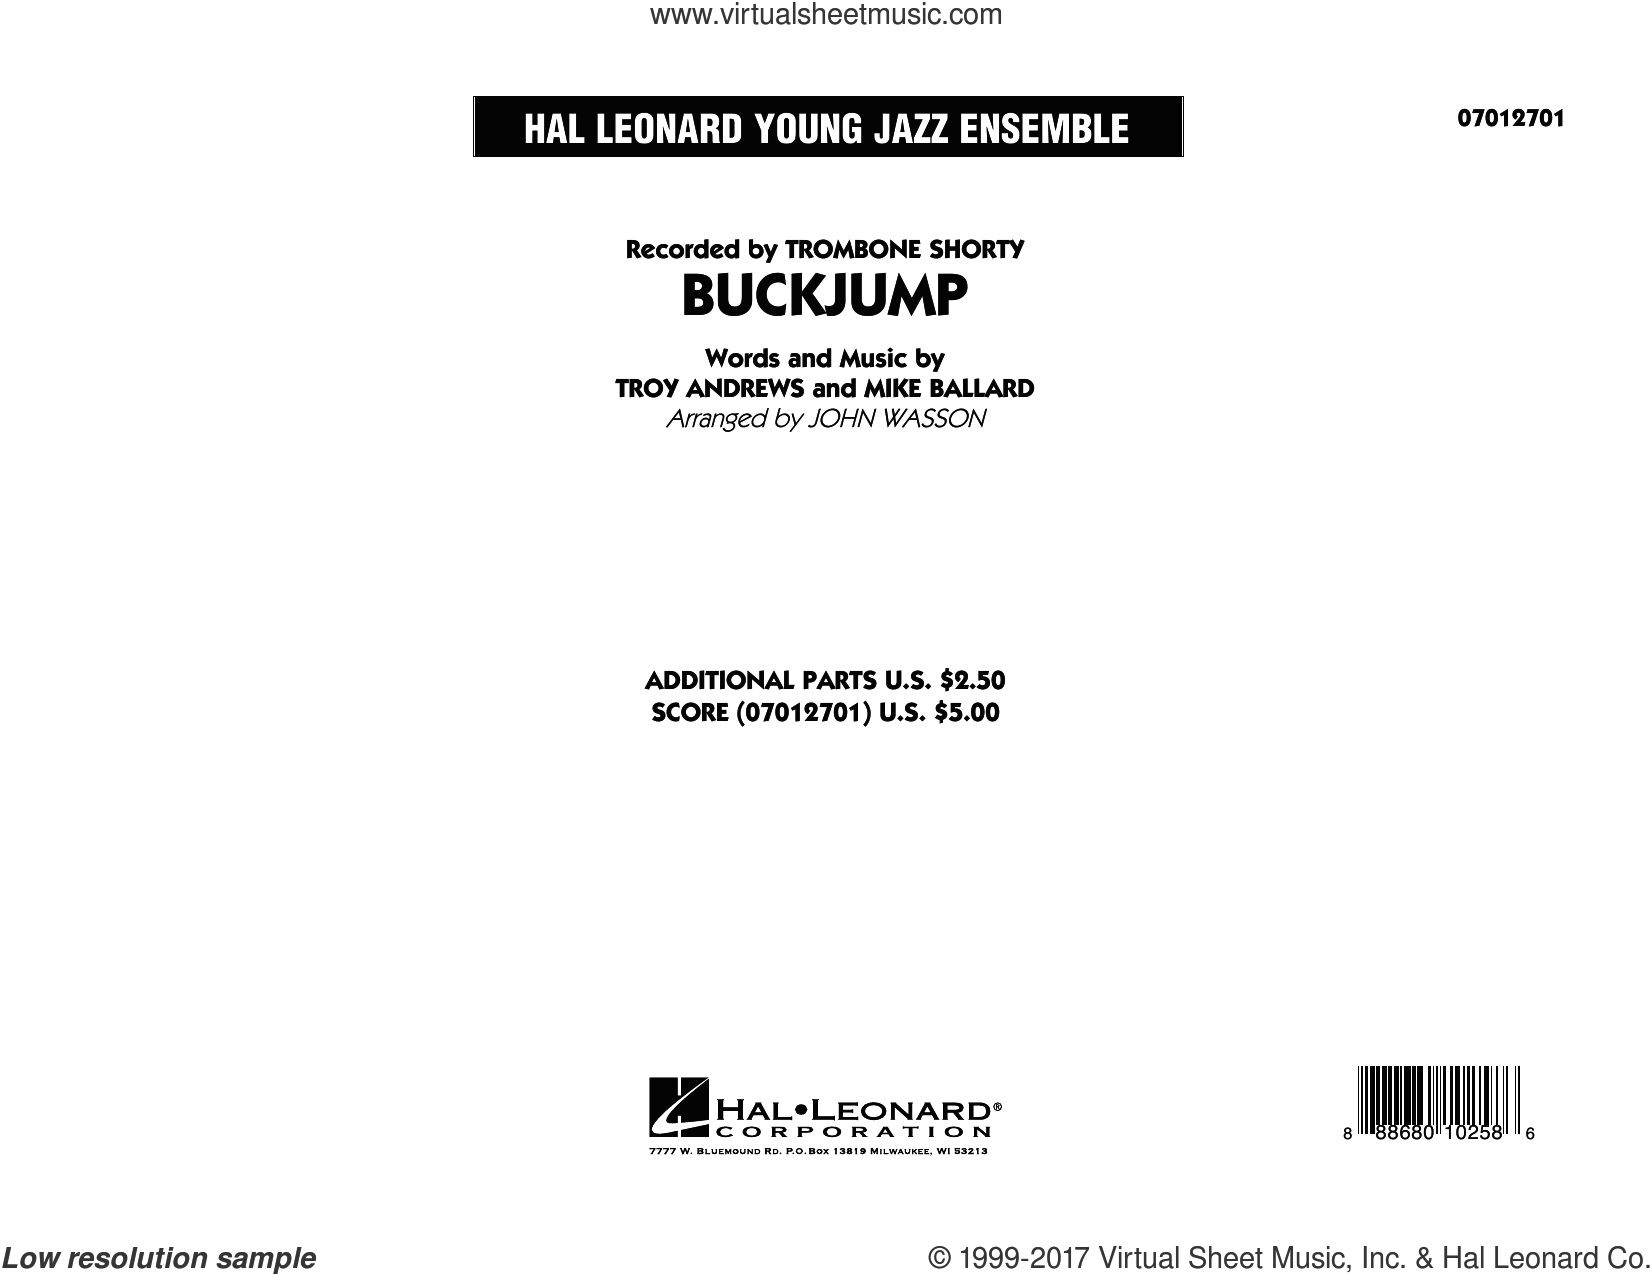 Buckjump (COMPLETE) sheet music for jazz band by John Wasson, Mike Ballard, Trombone Shorty and Troy Andrews, intermediate skill level